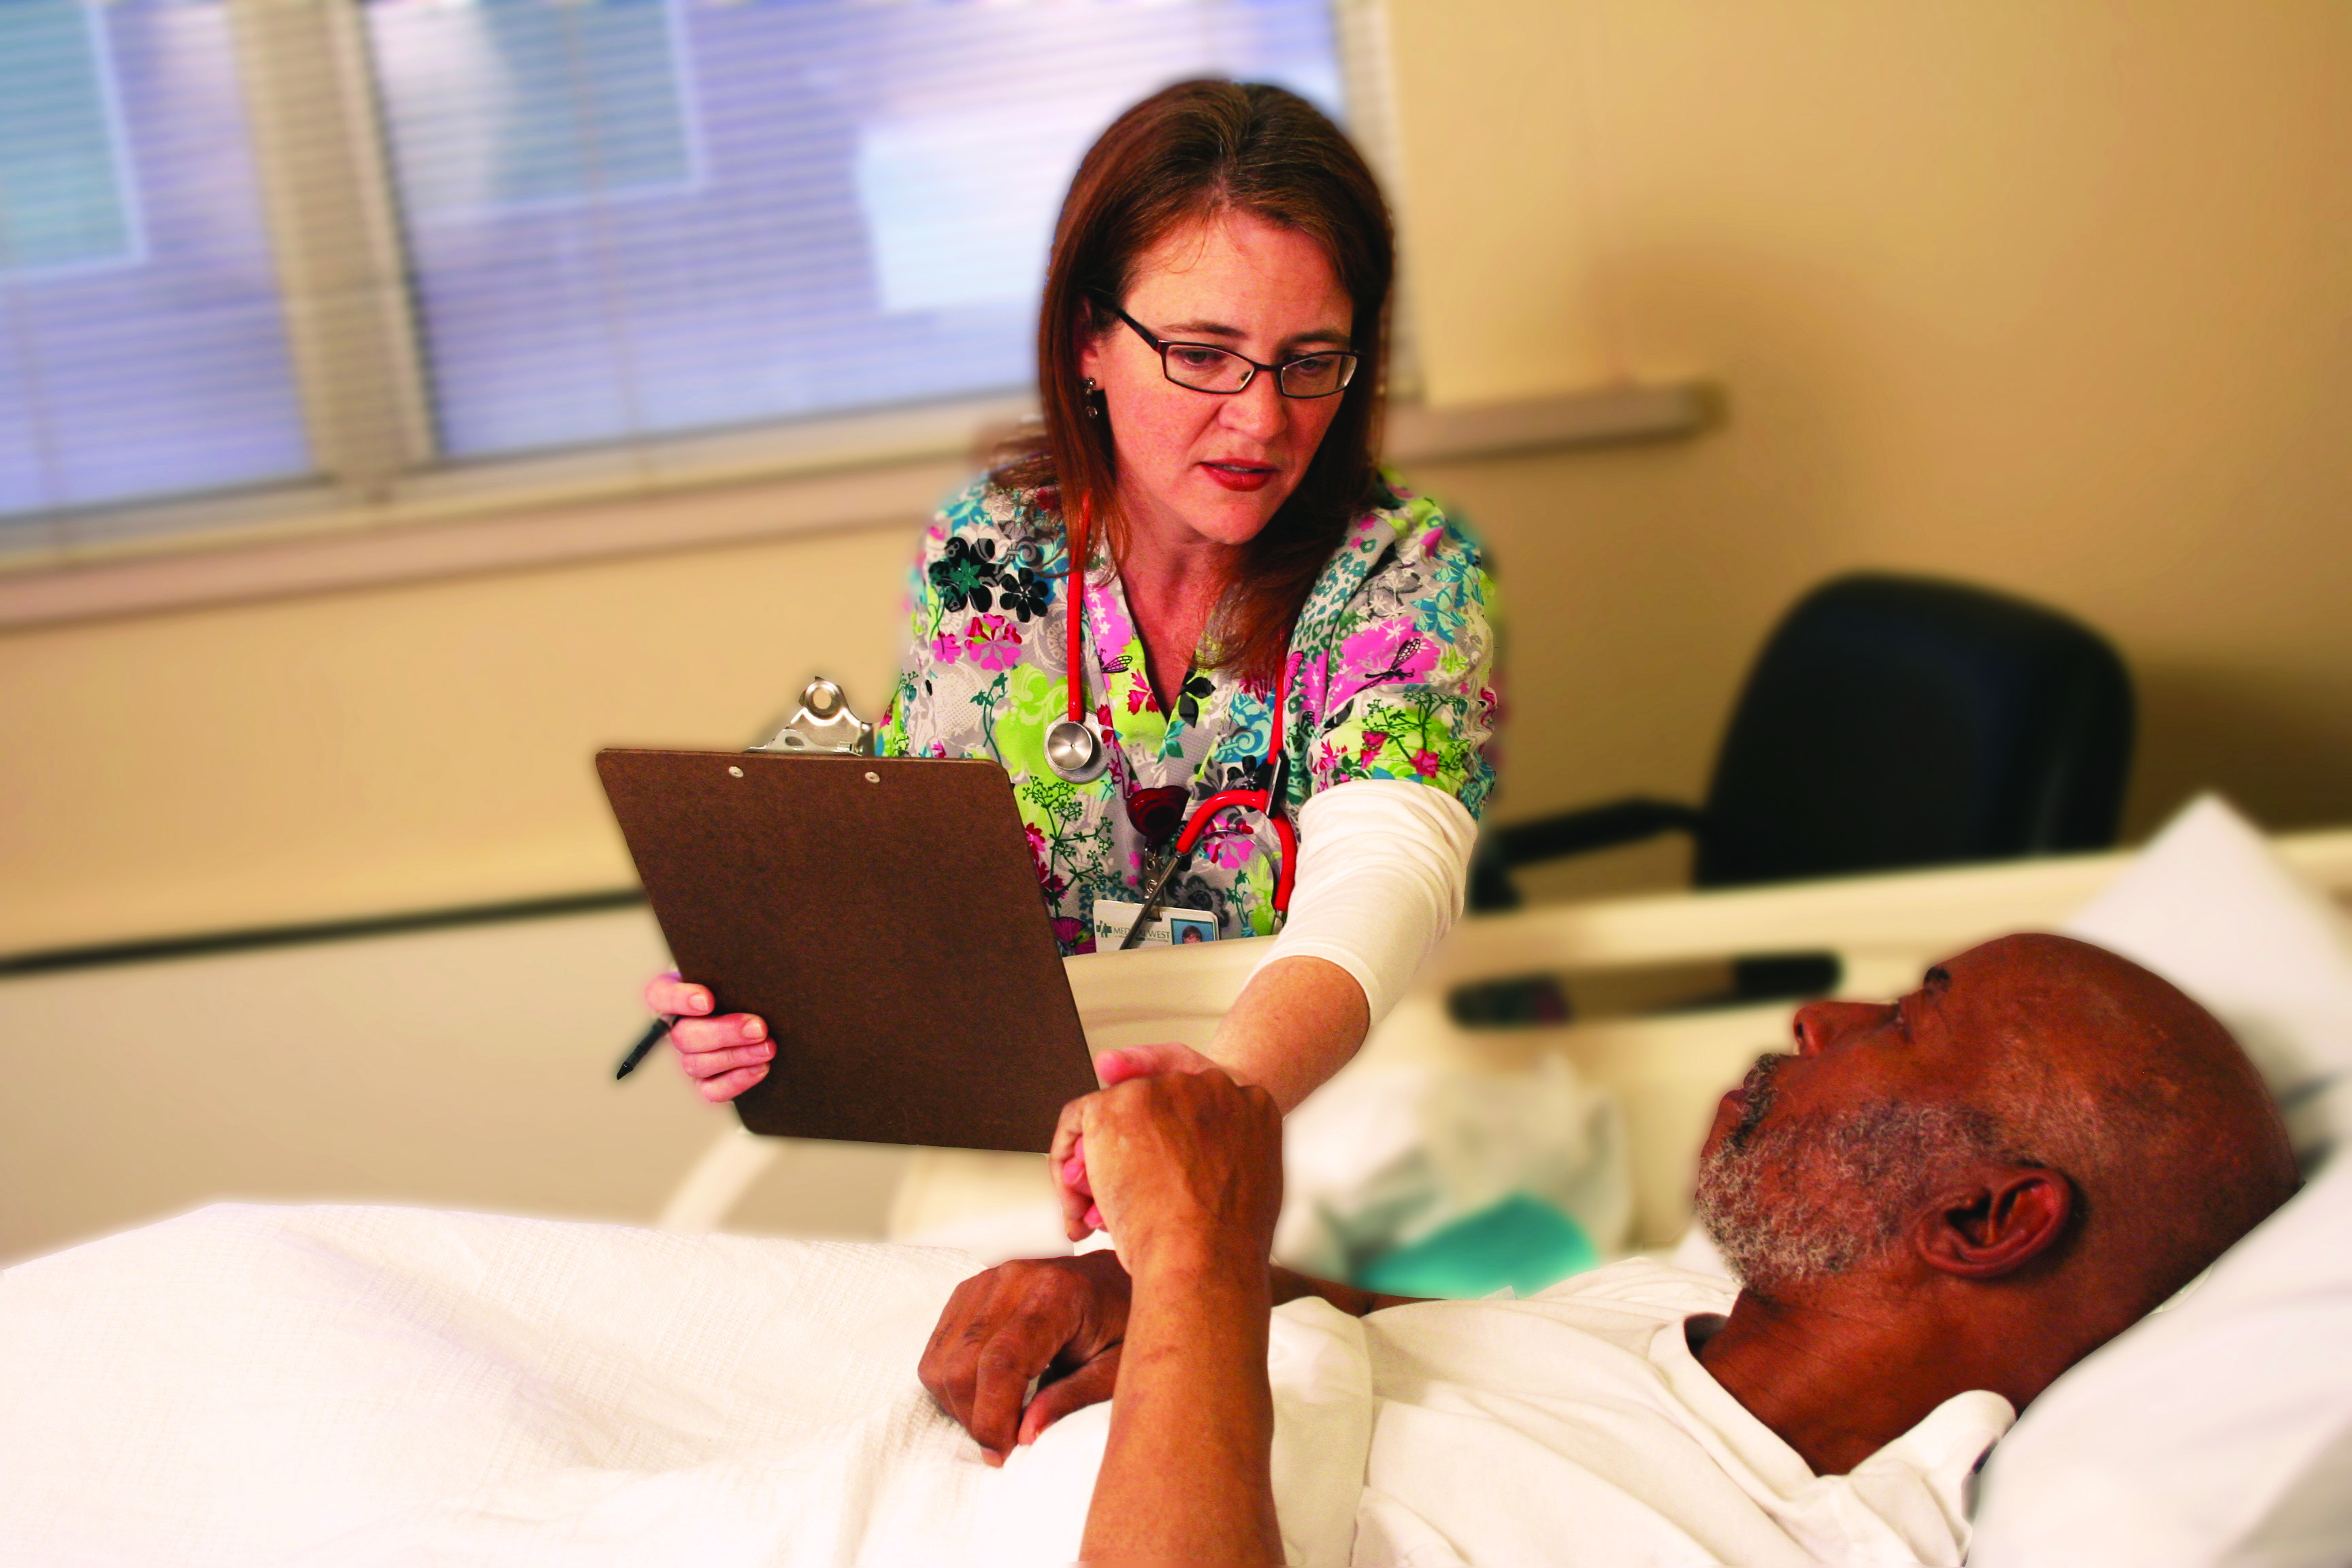 A specialized nurse assists a patient in the Geriatric Psychiatry Unit at UAB Medical West.